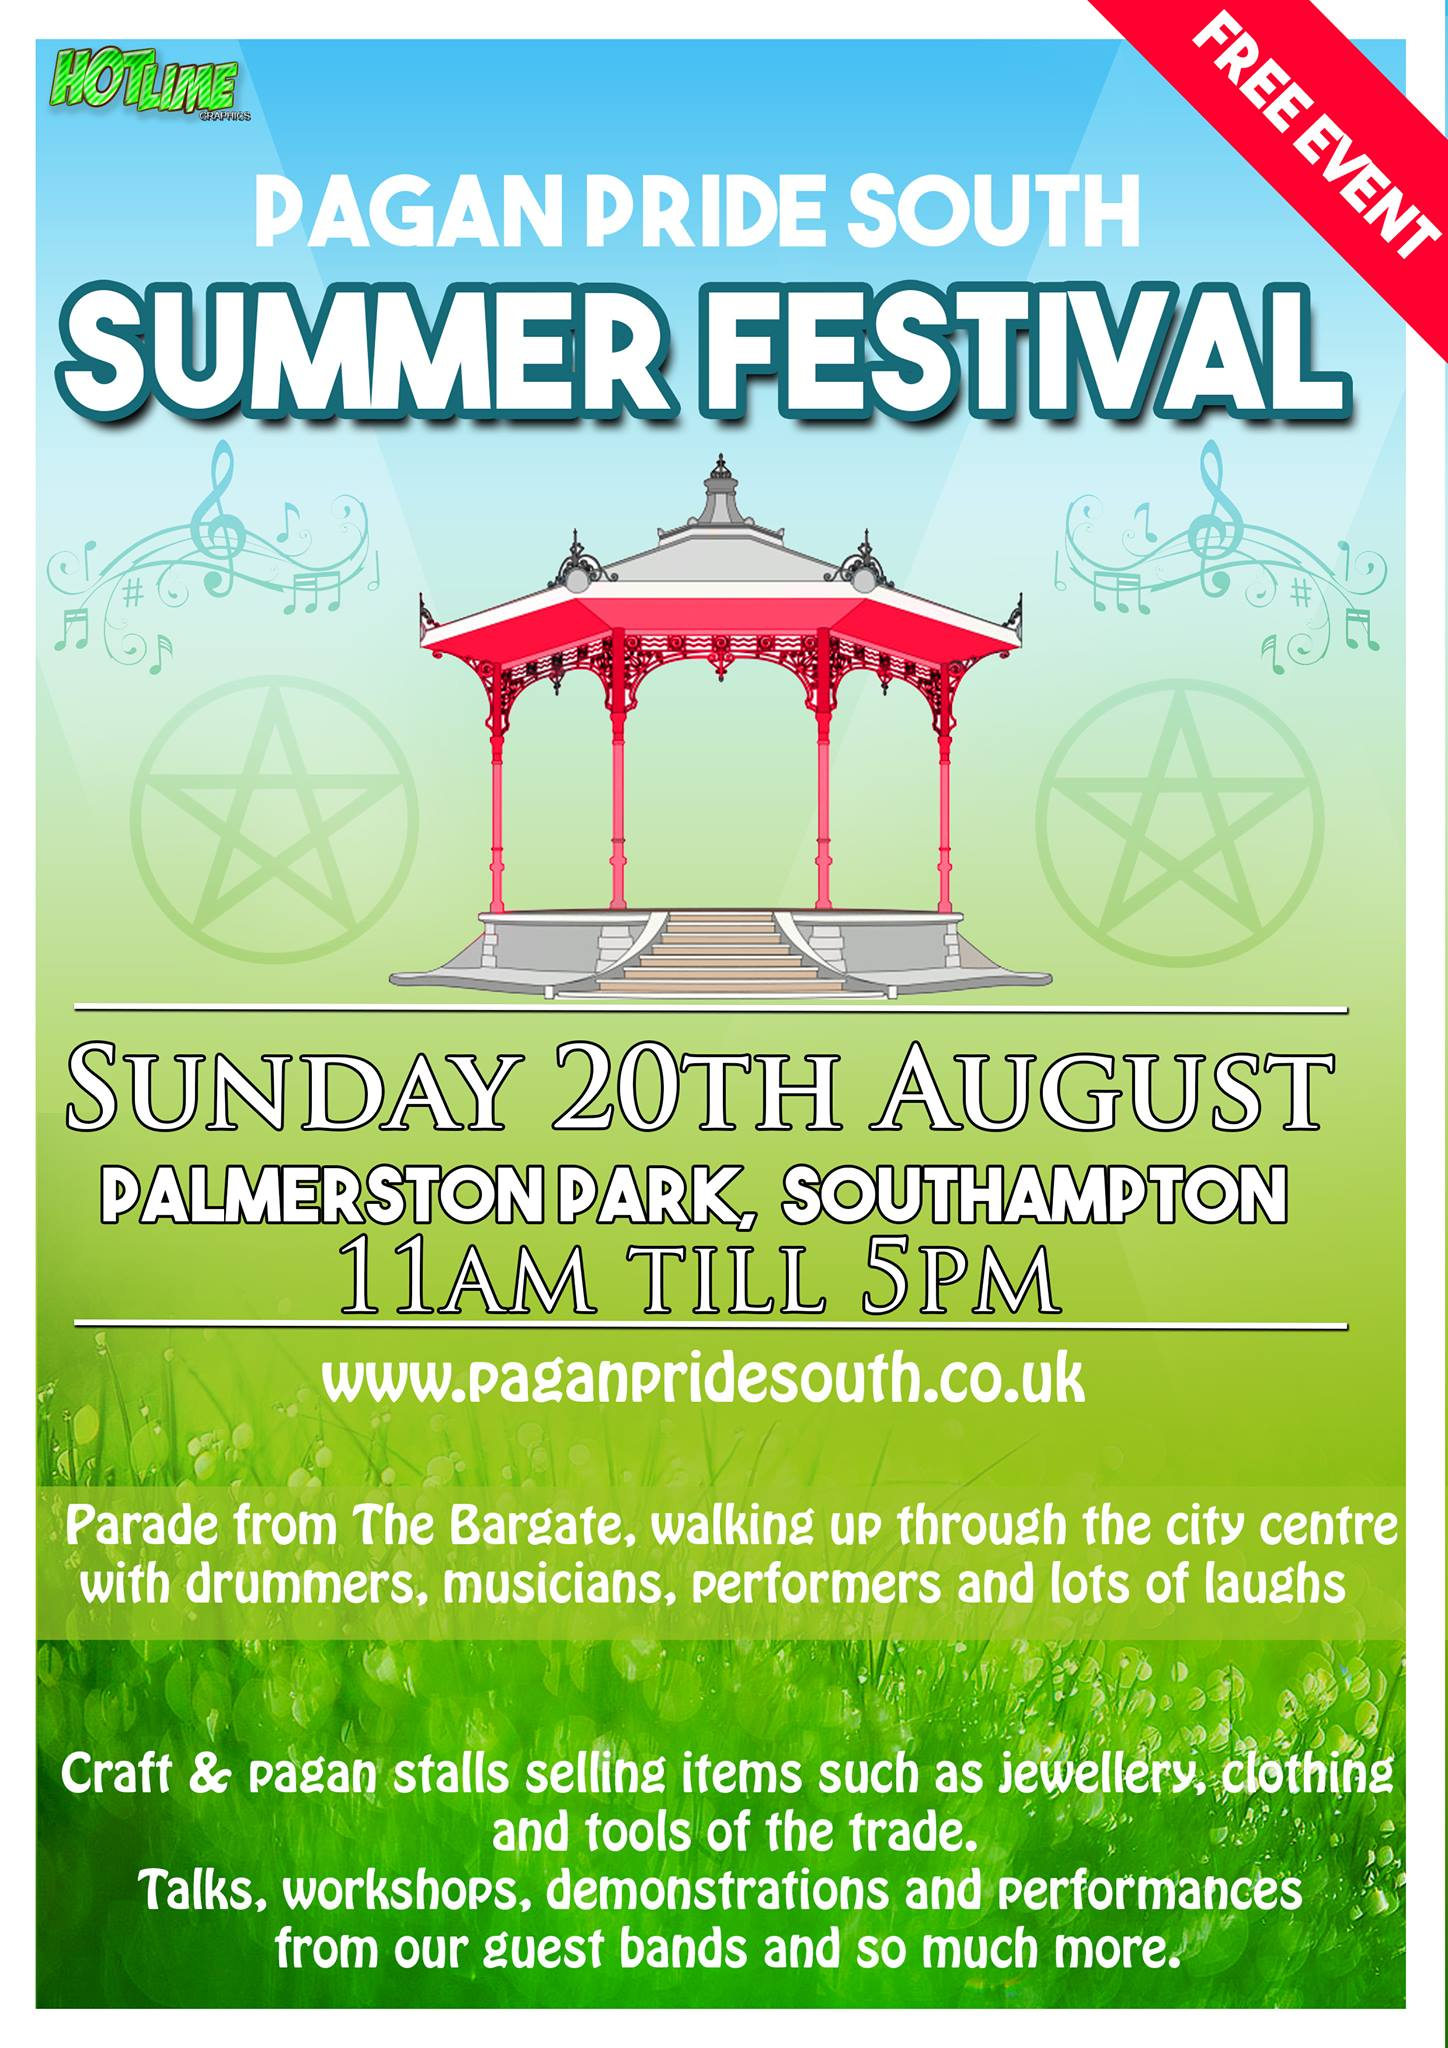 Pagan Pride South Summer Festival 2017